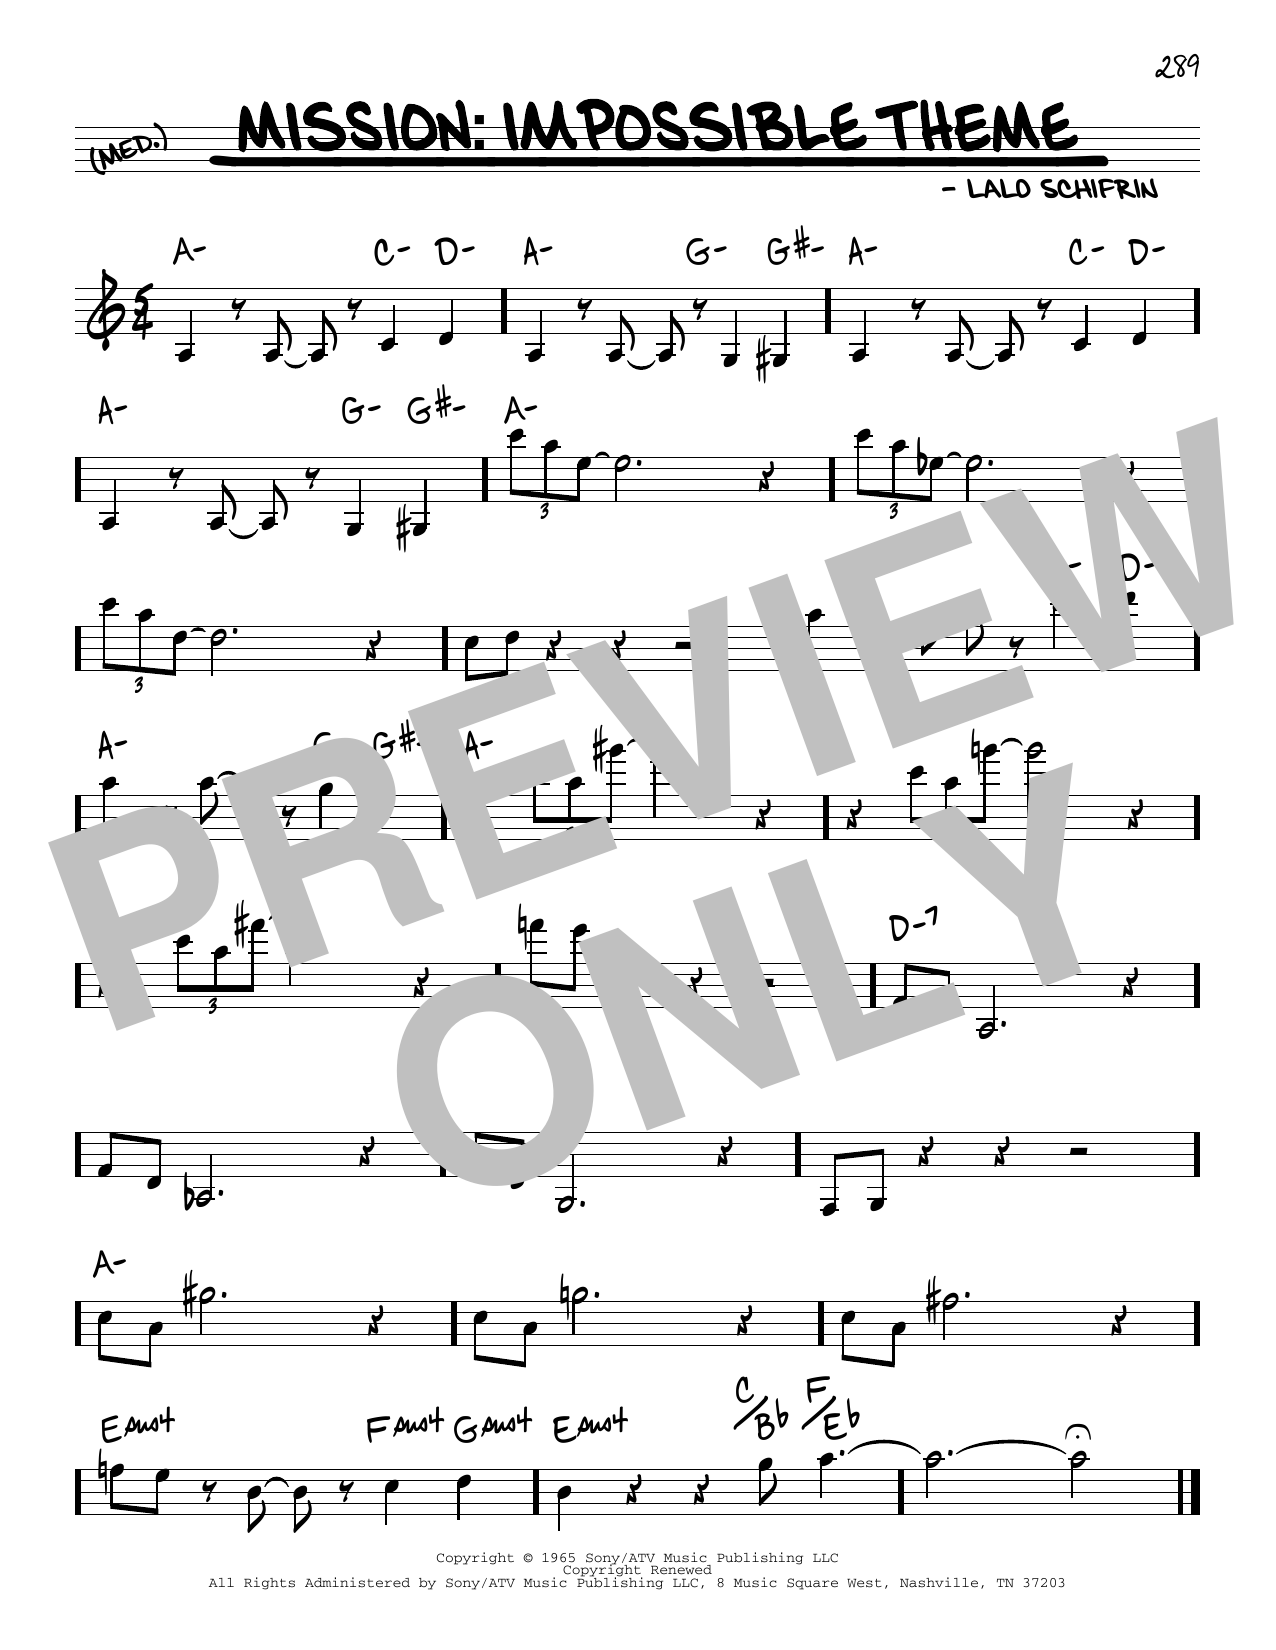 Lalo Schifrin Mission: Impossible Theme (Mission Accomplished) sheet music notes and chords